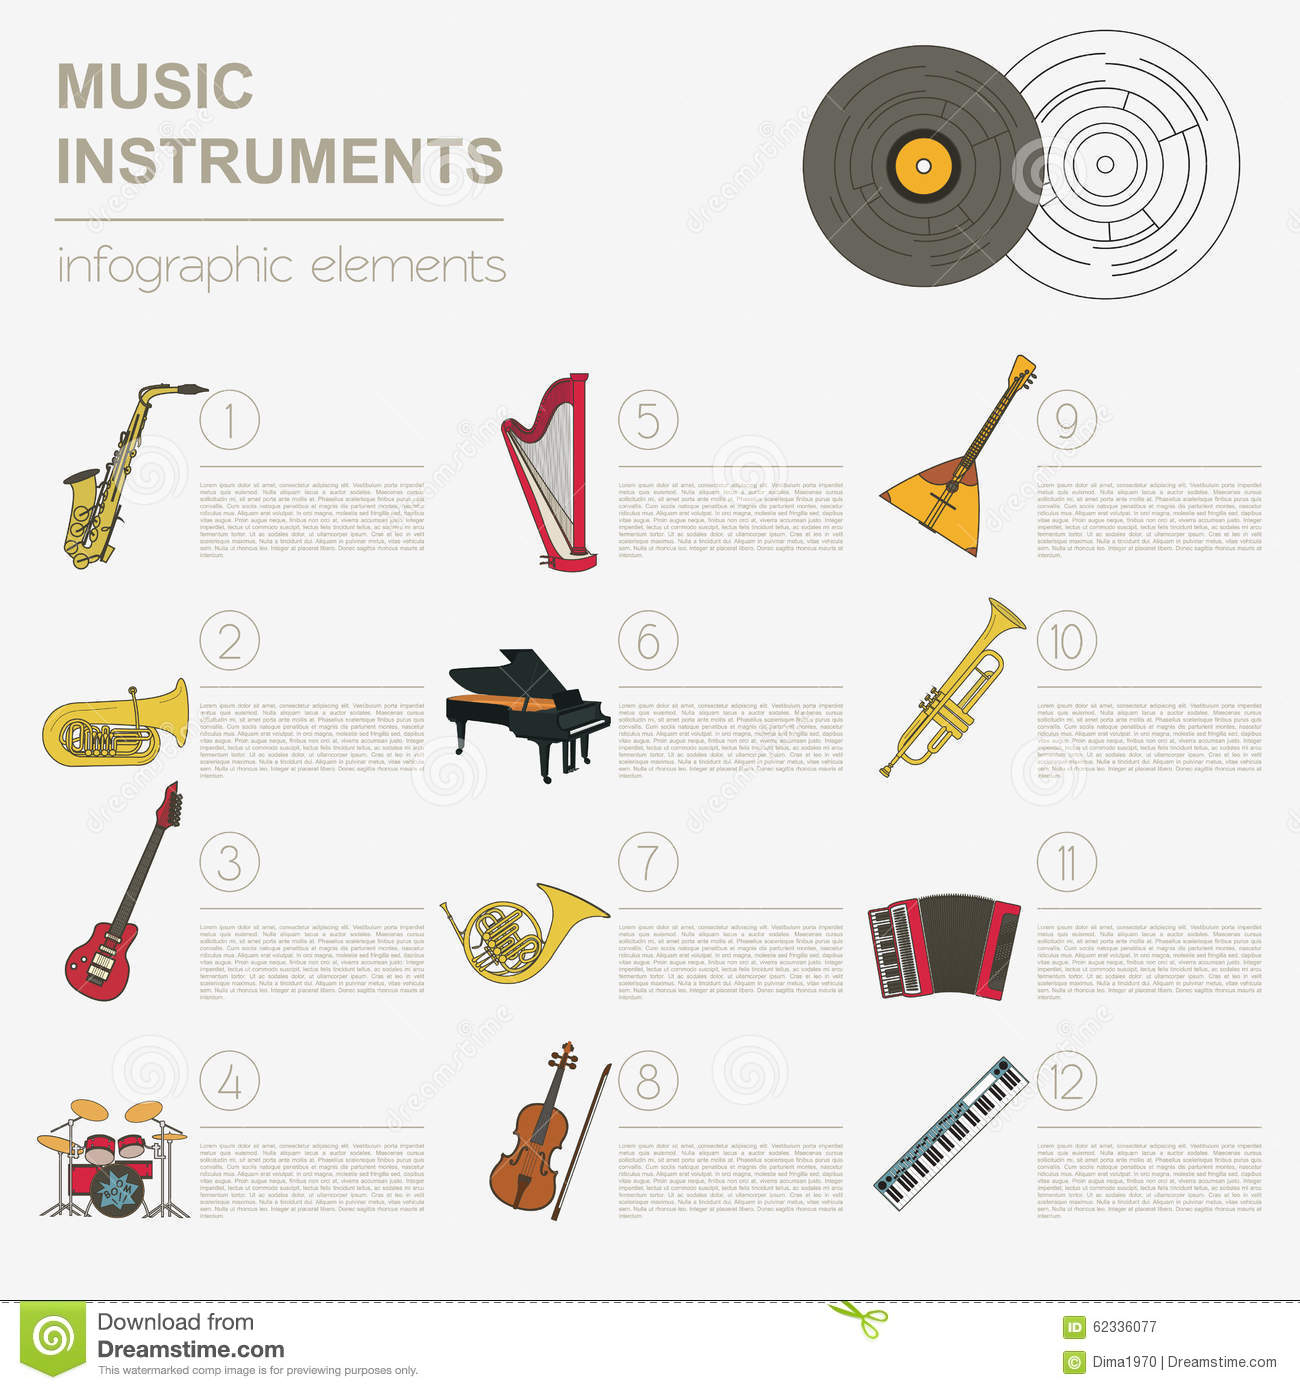 Worksheets Types Of Musical Instrument musical instruments graphic template all types of instr royalty free stock photography